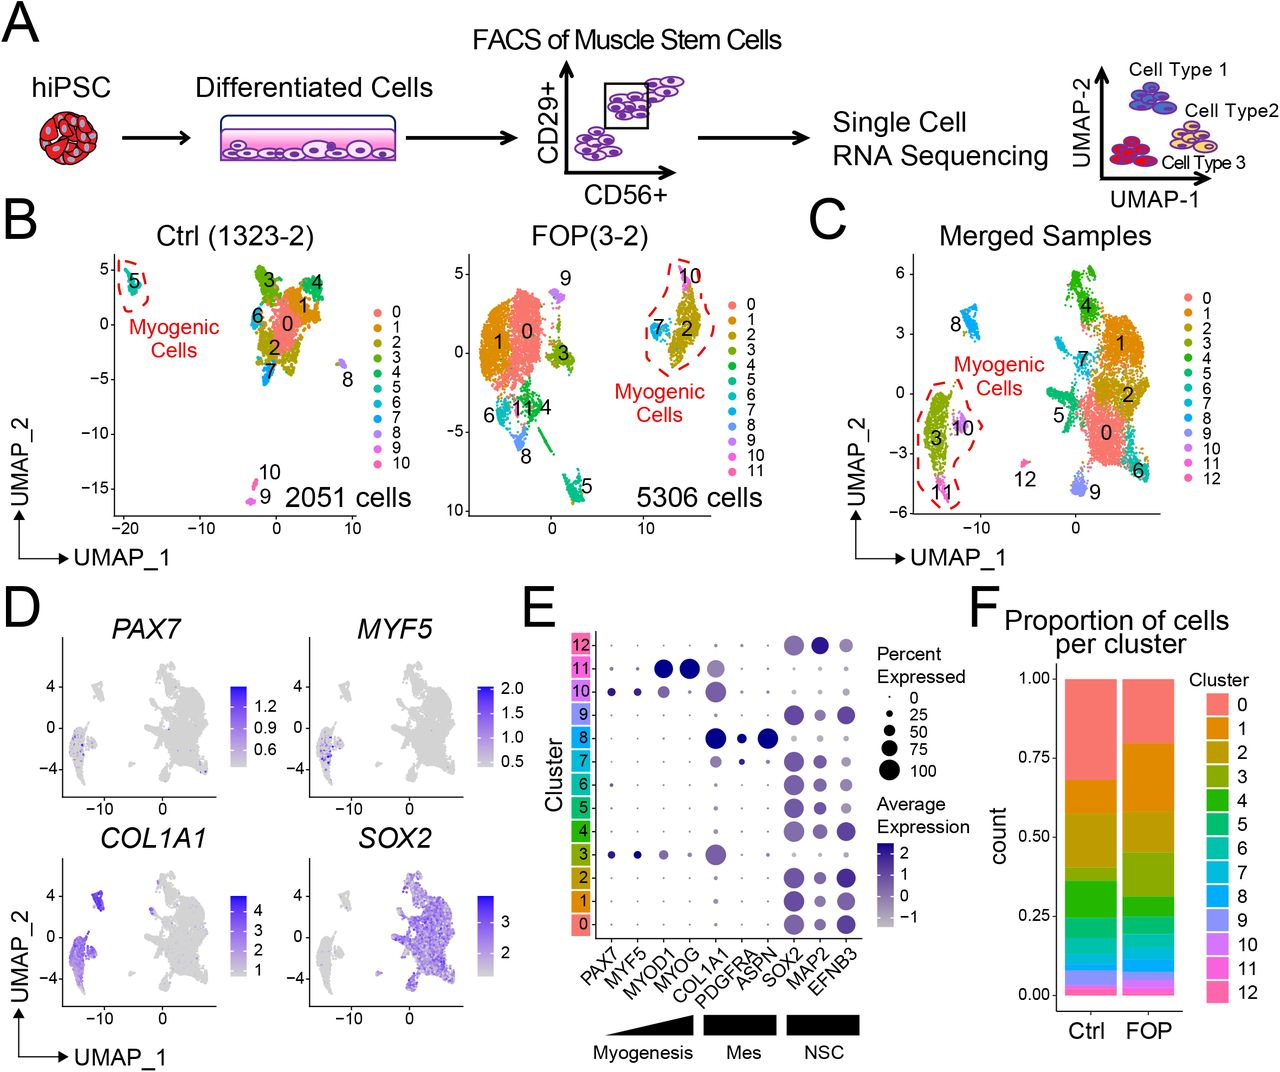 Single cell RNA sequencing of HNK1 - CD45-CD31 - CXCR4 + <t>CD29</t> + CD56 dim cells. (A) Schematic of differentiating hiPSCs, sorting of iMPCs, and scRNAseq. (B) UMAP visualization plots of the control (2,051 cells) and FOP (5,306 cells) samples. Each dot represents one cell colored by cluster identification. The myogenic cell type was assigned according to expression of a combination of marker genes ( Figure 4-figure supplement 1 ). (C) UMAP of cells combined from both control and FOP samples. (D) Feature expression plots showing the localization of cells expressing myogenic markers, mesenchymal, and neural cell marker. (E) Dot plot displaying expression genes associated with myogenesis, neurogenesis and mesenchymal markers. (F) Proportion of cells per cluster for each sample.